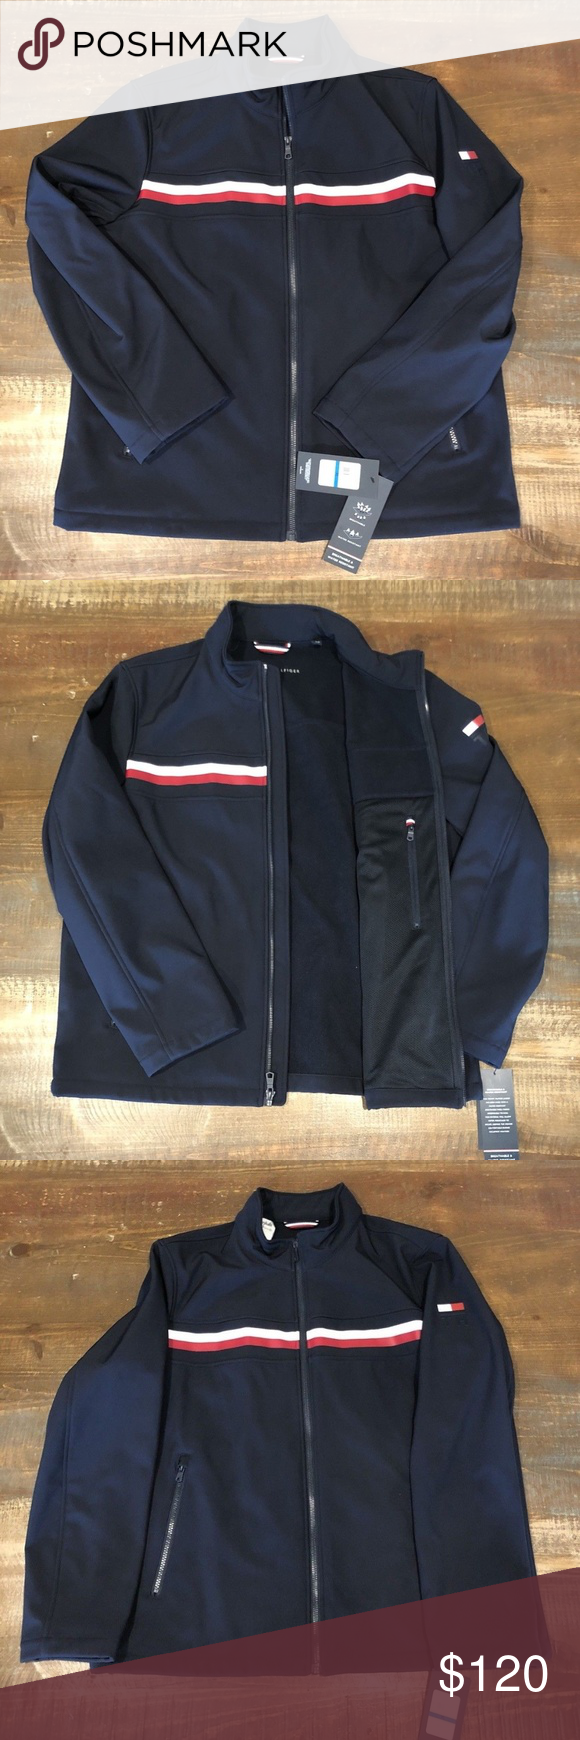 4defc3028c71ac New Tommy Hilfiger Mens Yacht Jacket New Tommy Hilfiger Mens Yacht Jacket  Navy Windbreaker Water Resistant Size XL New With Tags Pit to pit 25 1 2  Length 27 ...